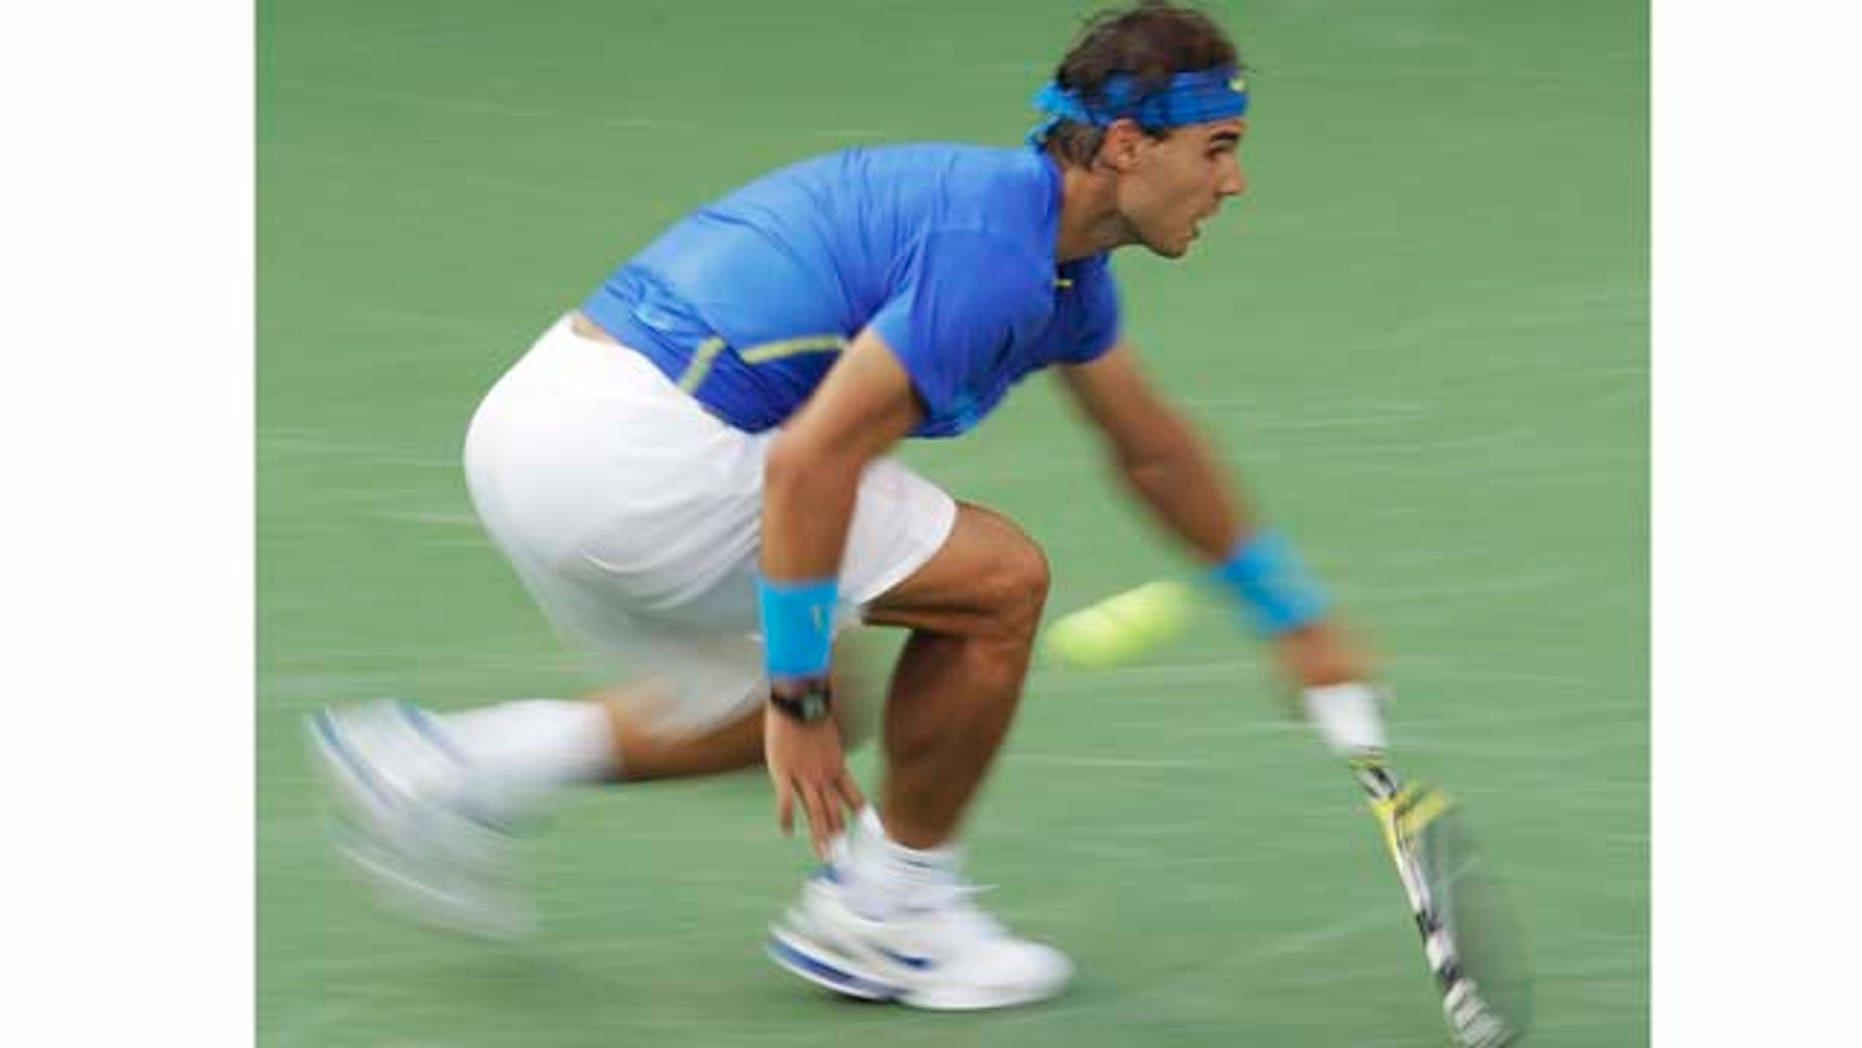 In a photo made using a slow shutter speed to create a blurred effect, Rafael Nadal of Spain returns a shot to Novak Djokovic of Serbia at the U.S. Open tennis tournament in New York, Monday, Sept. 12, 2011. (AP Photo/Charlie Riedel)